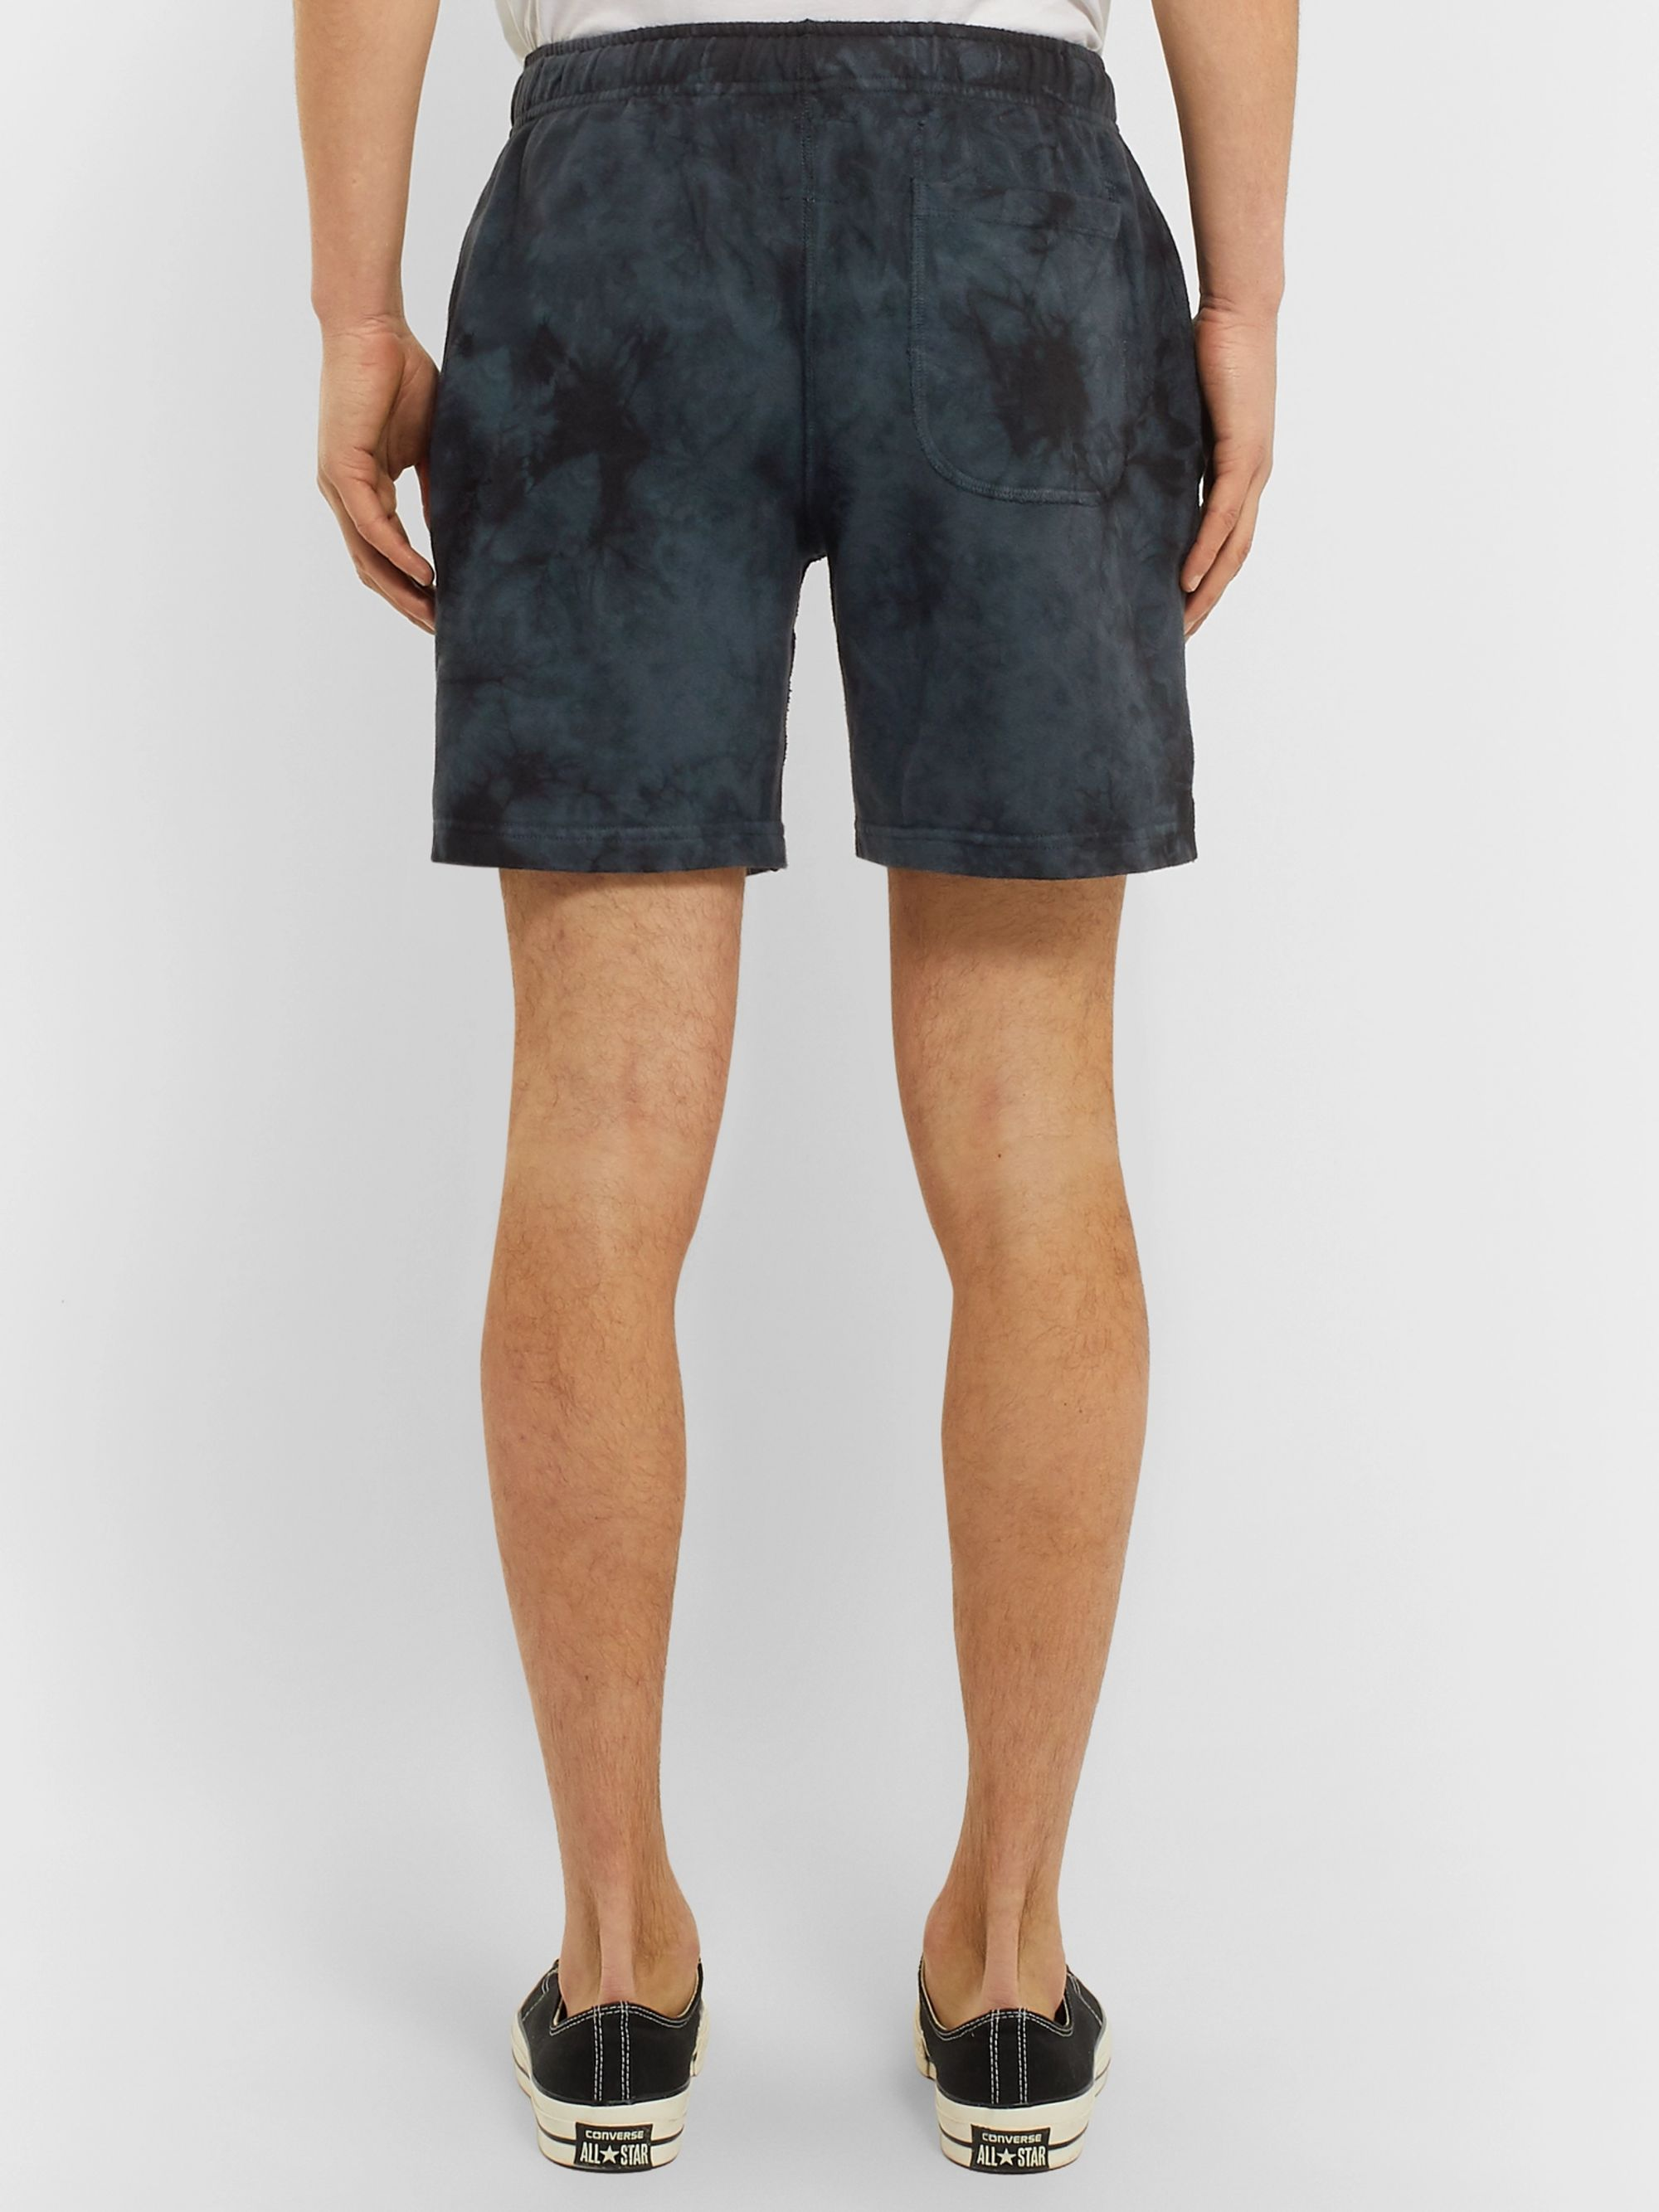 Todd Snyder + Champion Tie-Dyed Loopback Cotton-Jersey Shorts